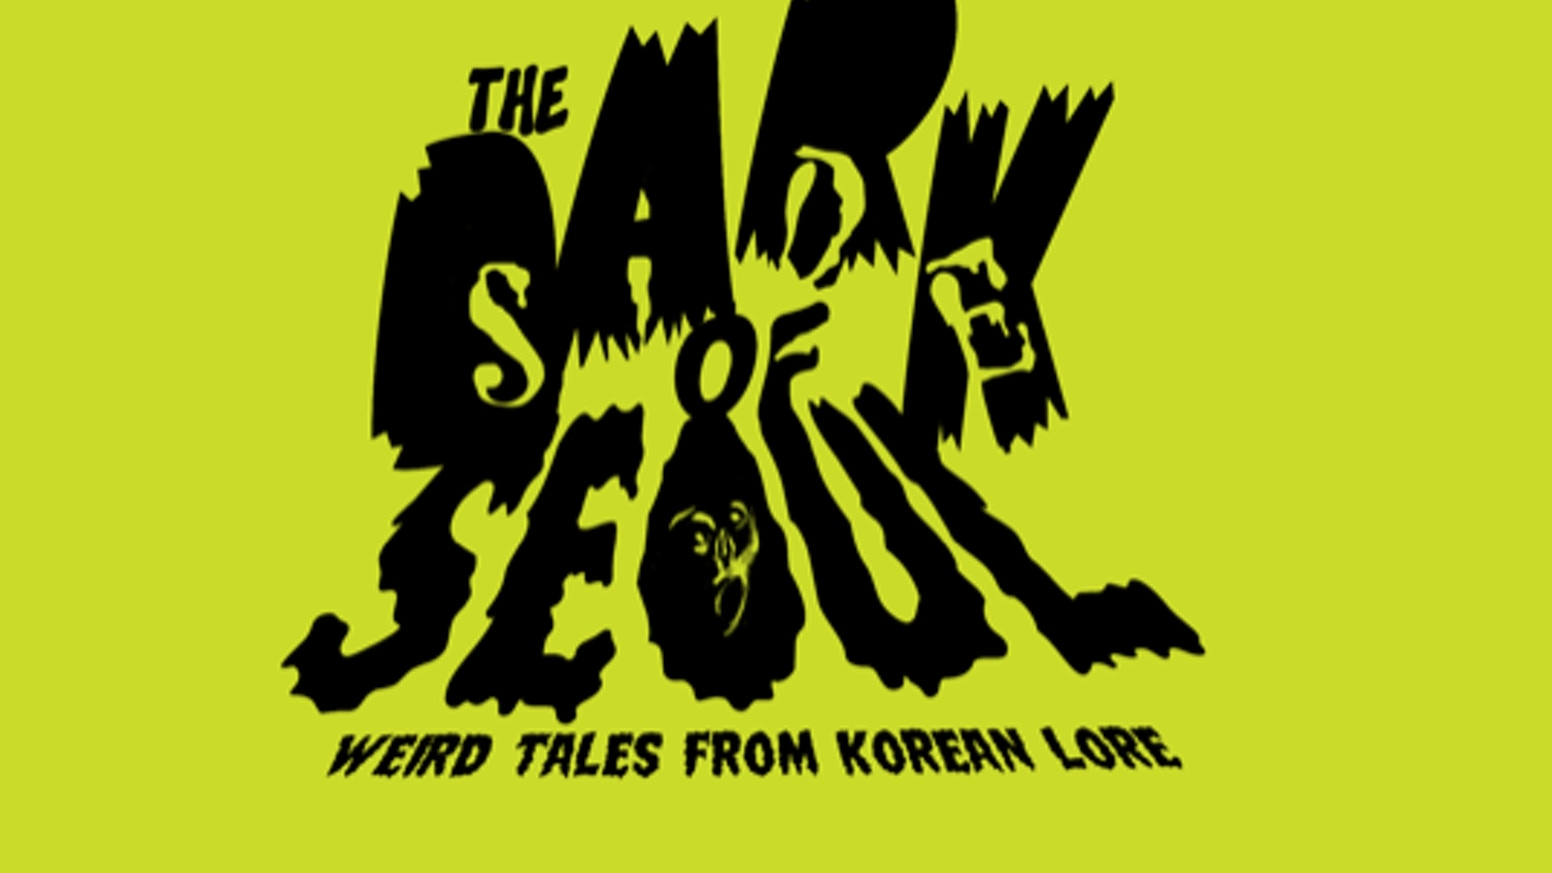 A comic book celebrating strange and eerie tales from Korean folklore, based on the popular Dark Side of Seoul Ghost Walk.